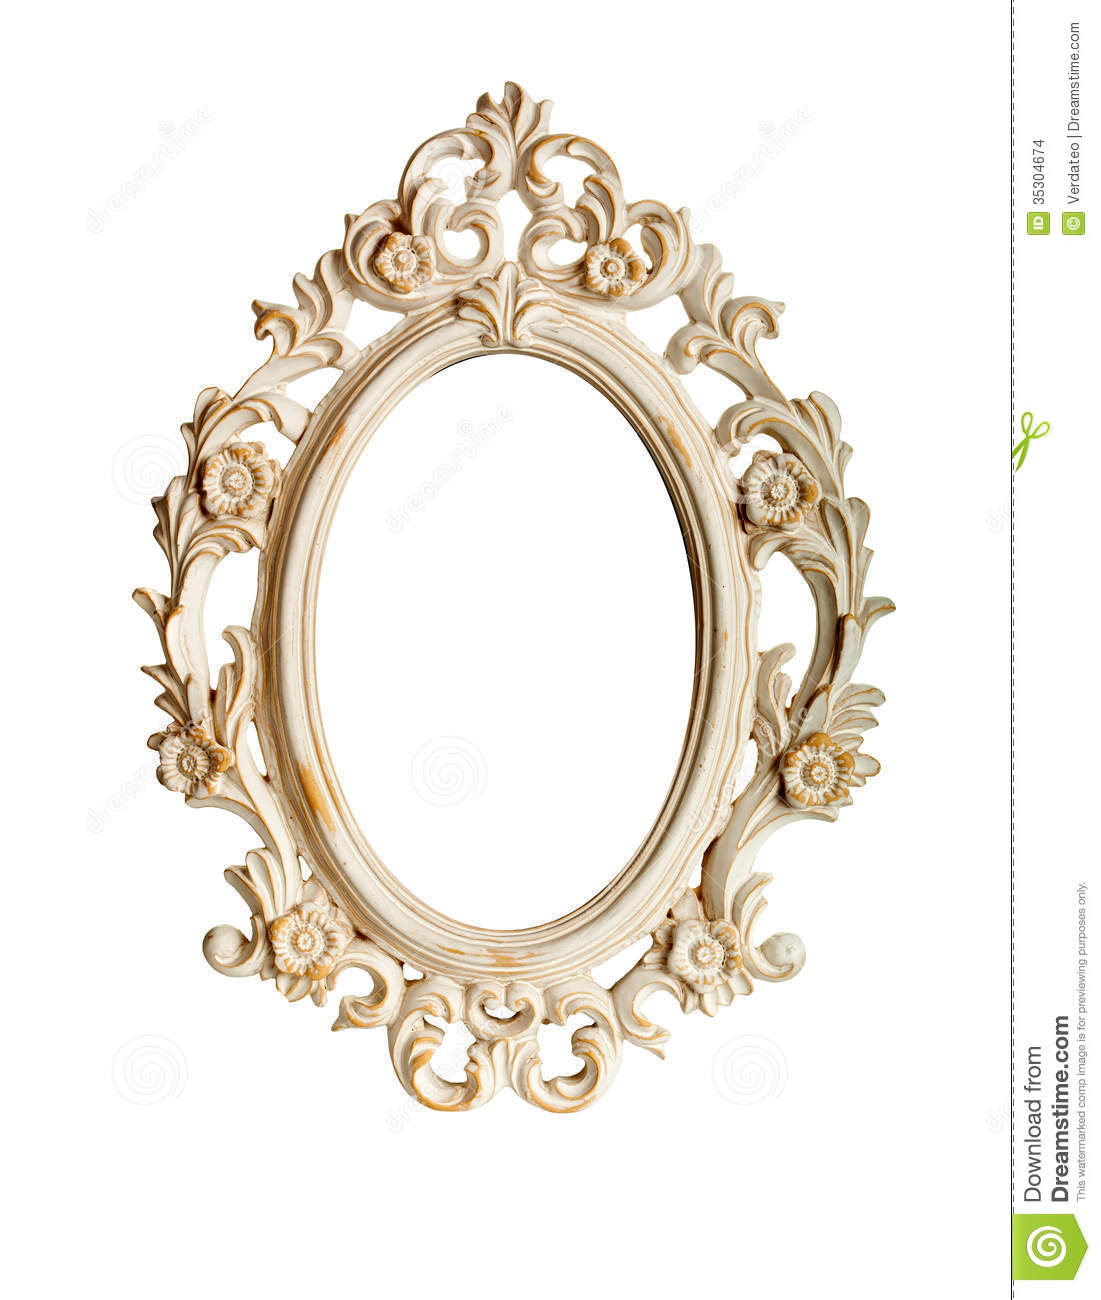 ornate frame isolated